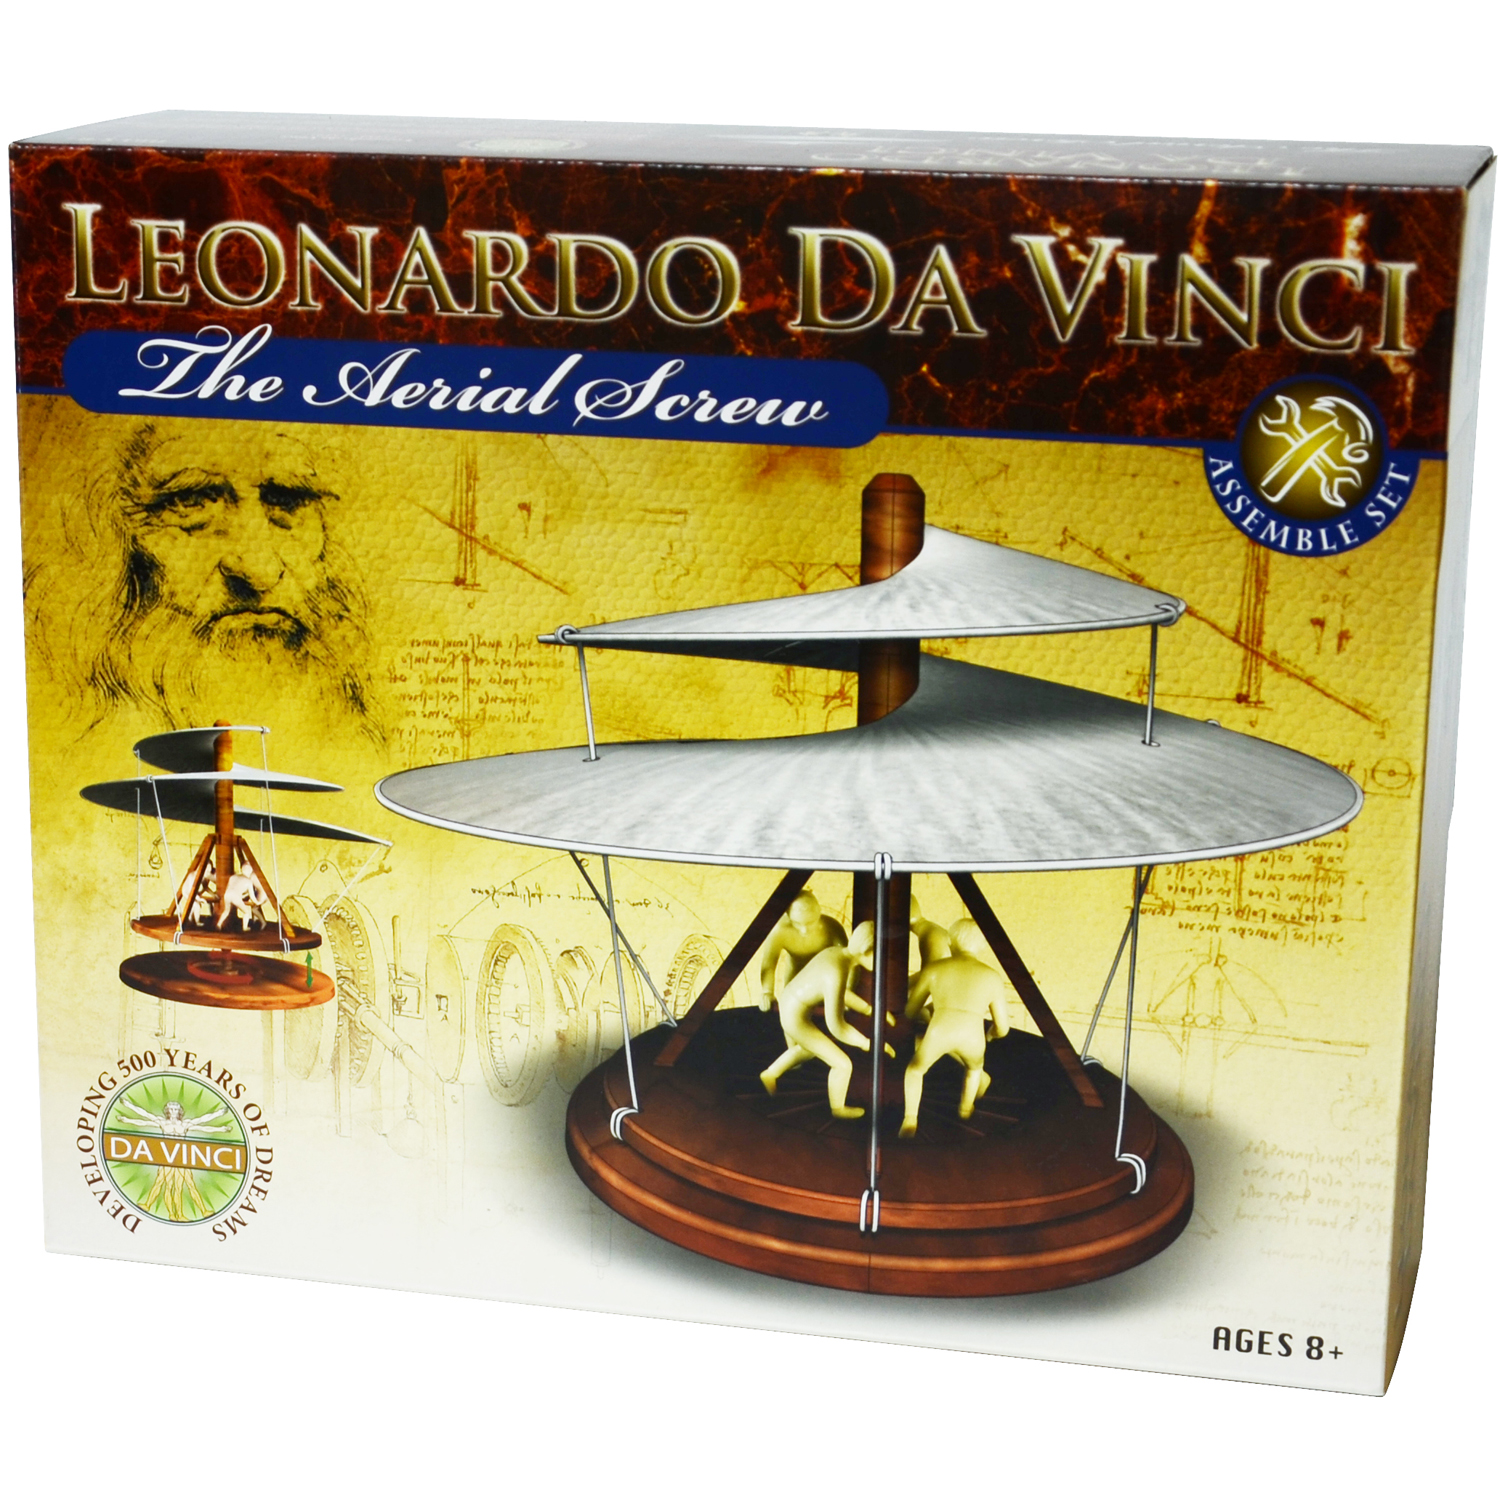 DaVinci Aerial Screw Kit